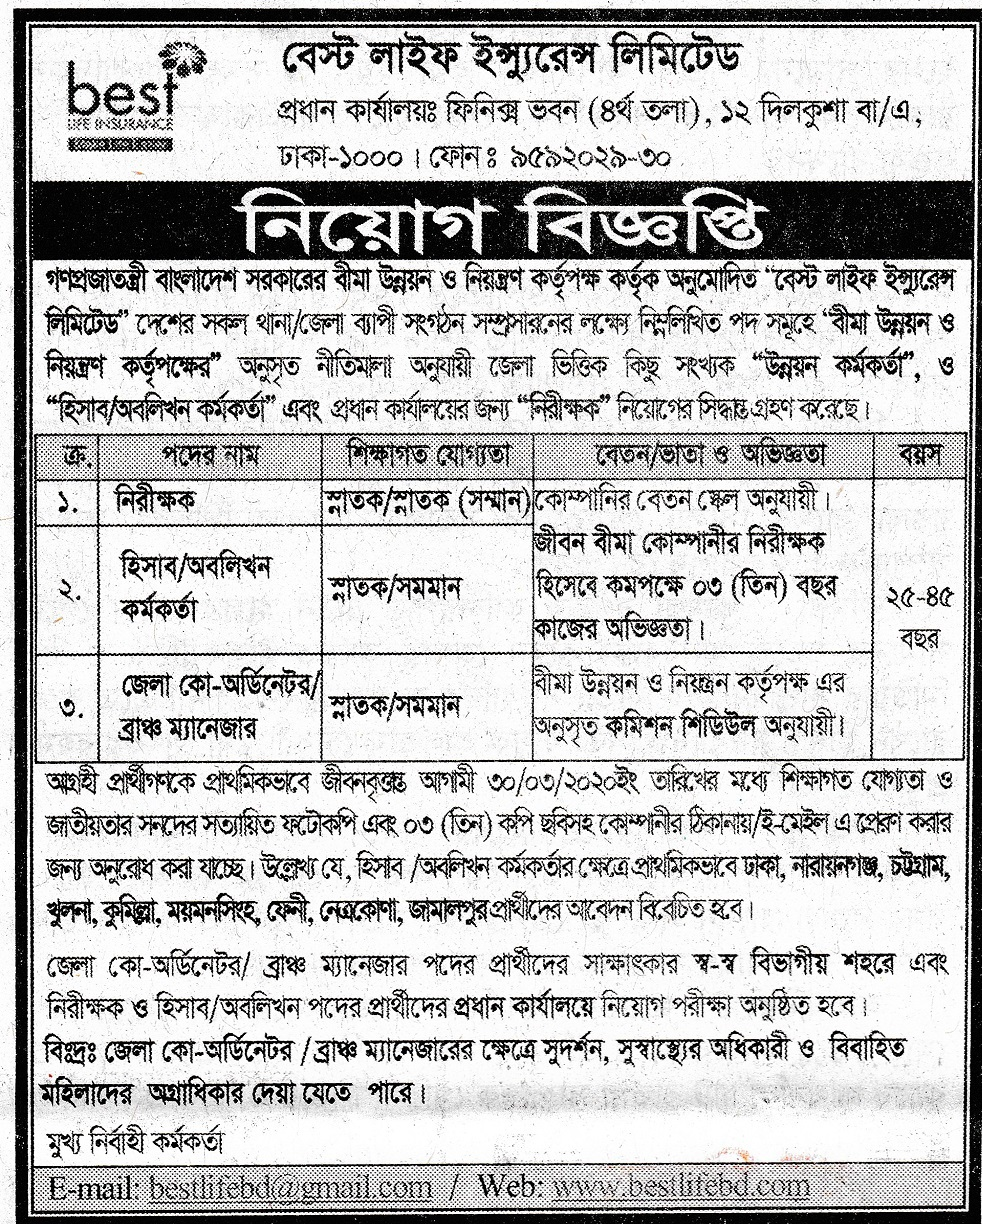 Best Life Insurance Limited Job Circular 2020